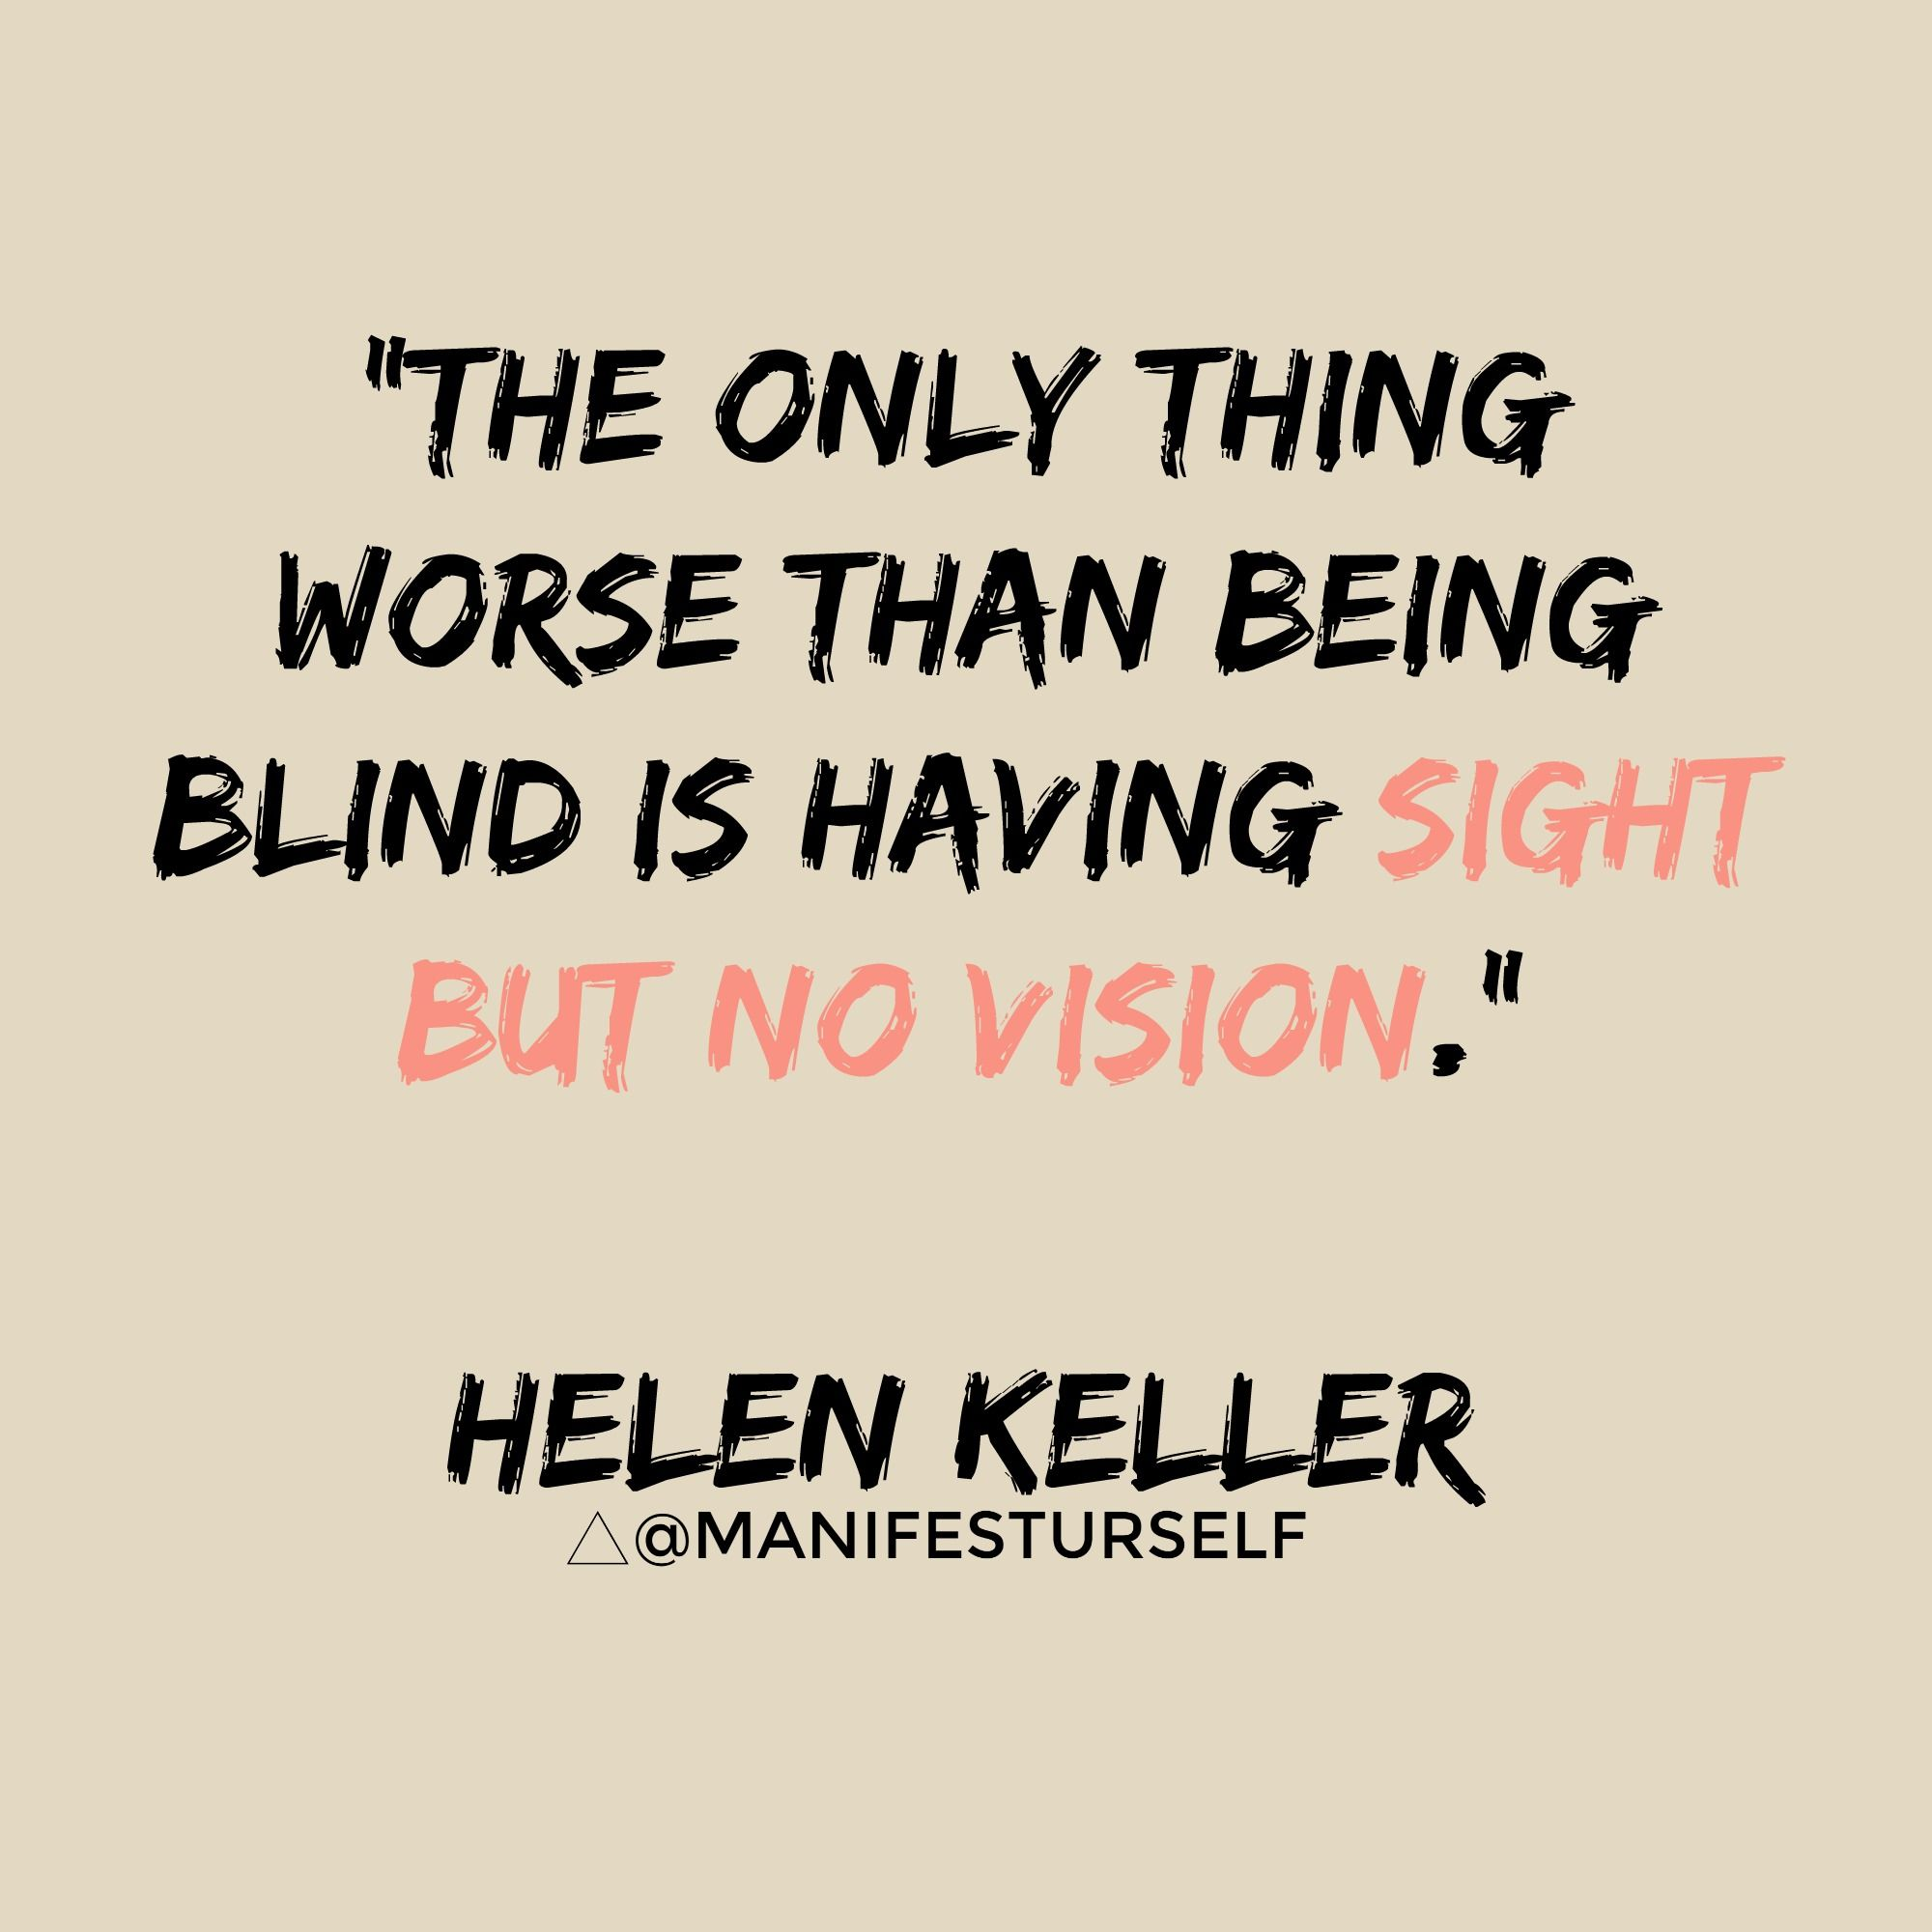 Helen keller quotes being blind is having sight but no vision helen keller quotes being blind is having sight but no vision helen keller ttonmy altavistaventures Image collections